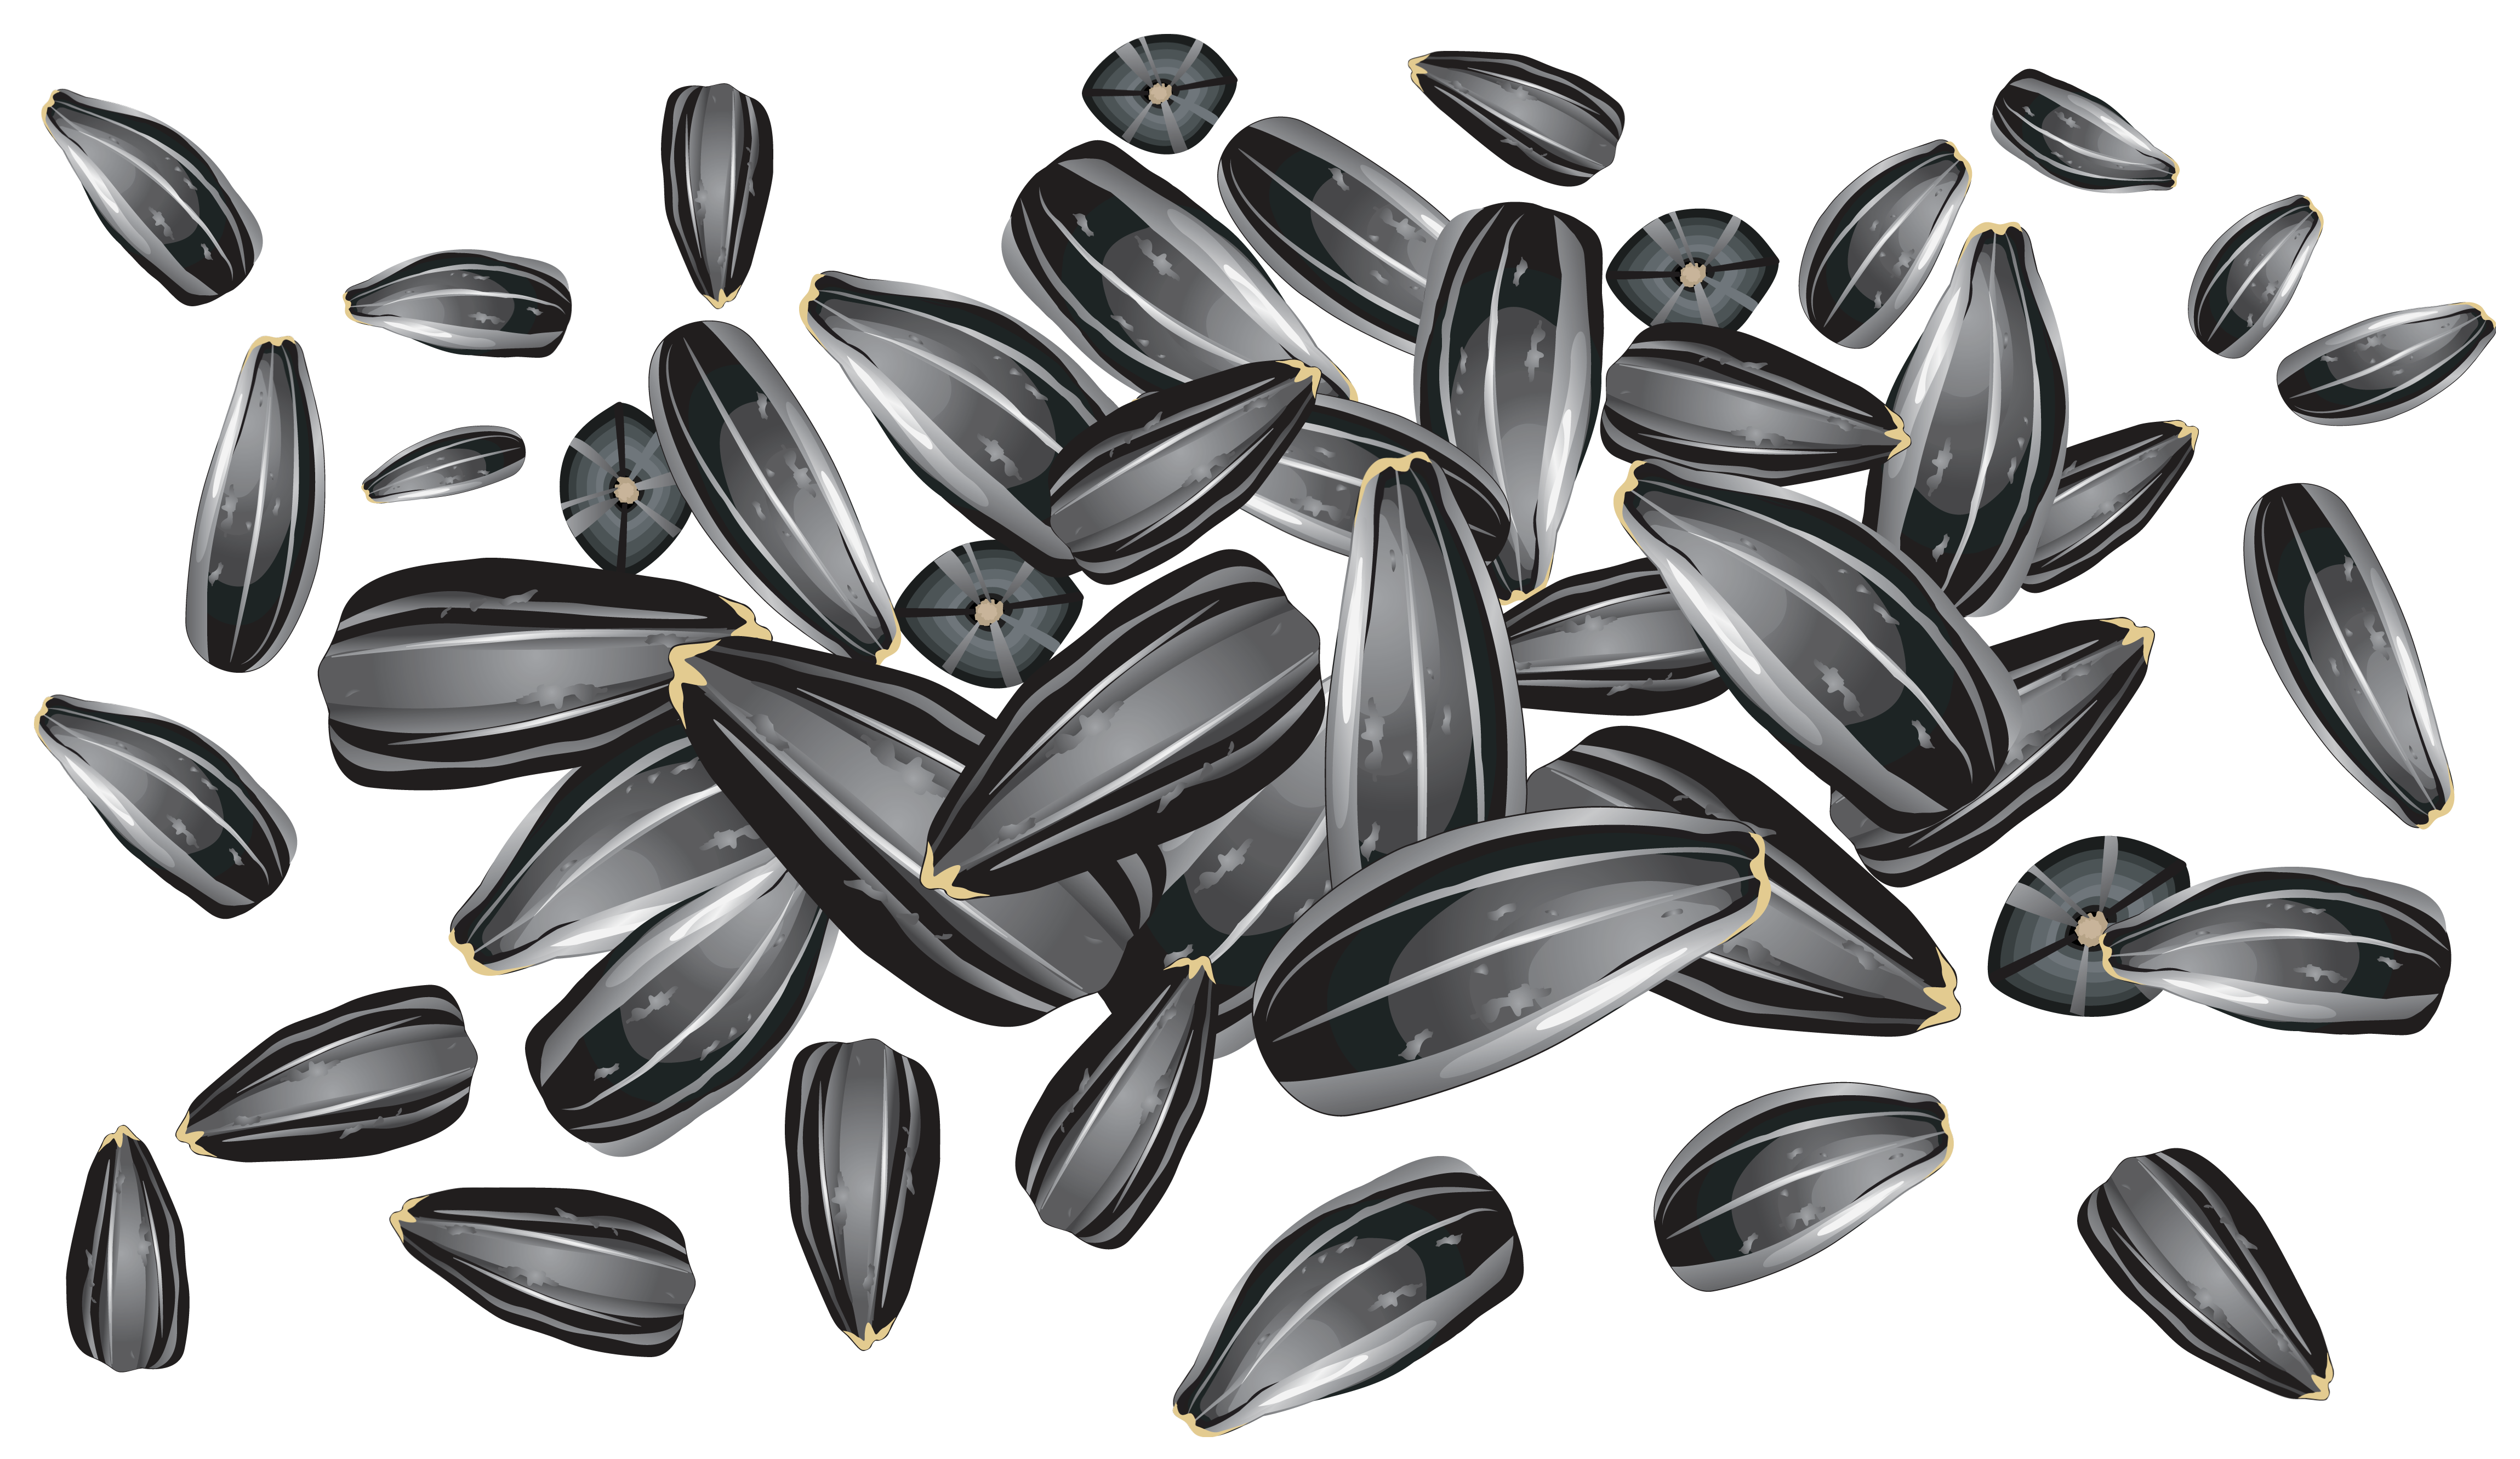 Sunflower seeds png images. Nuts clipart different seed